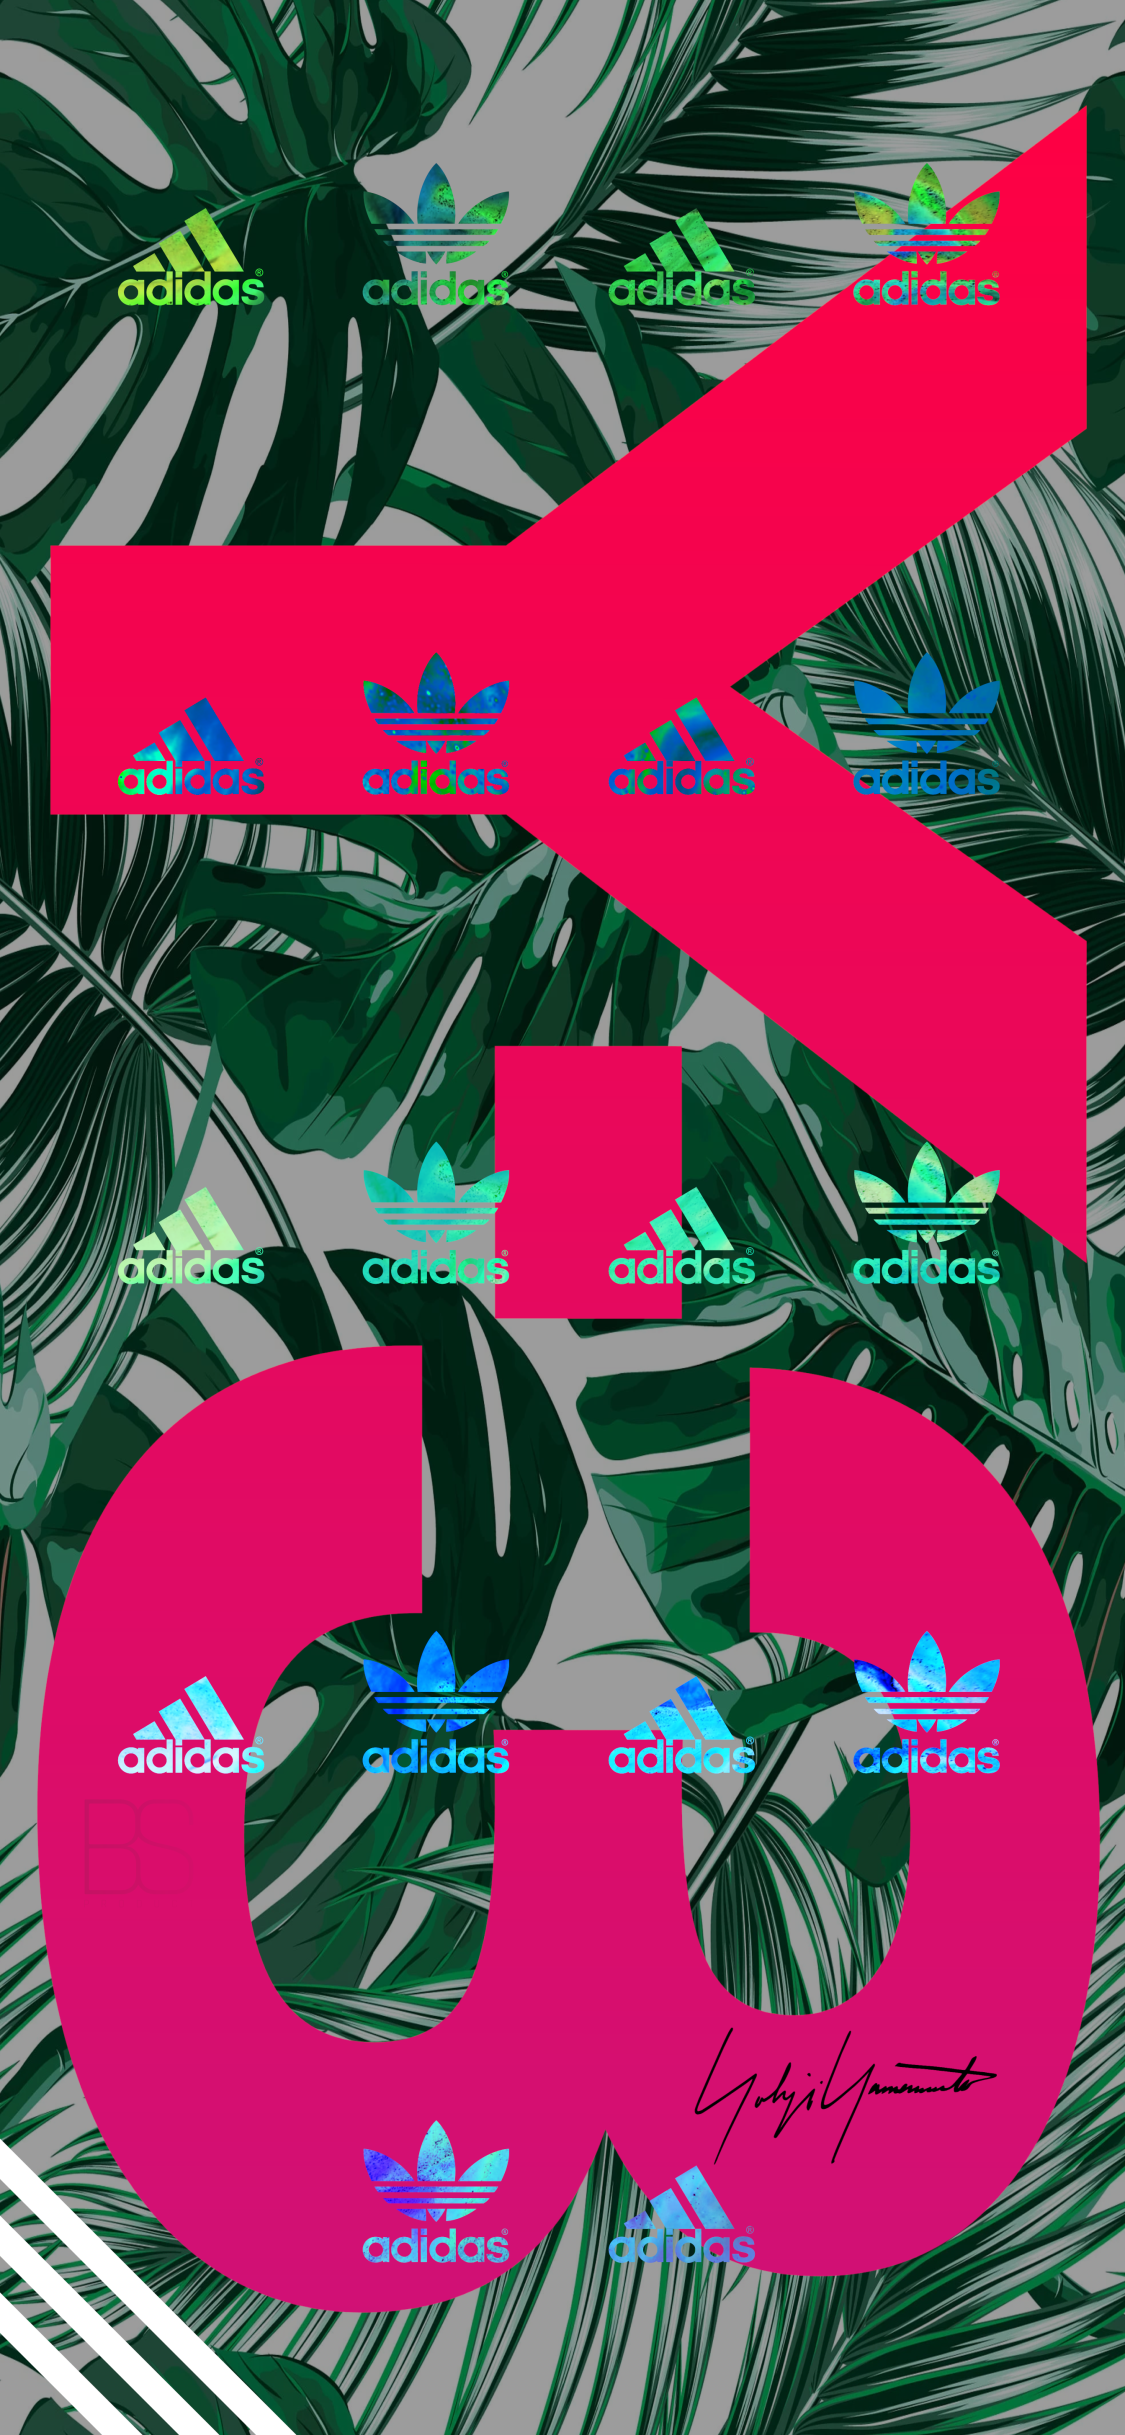 Adidas iPhone X Series wallpaper